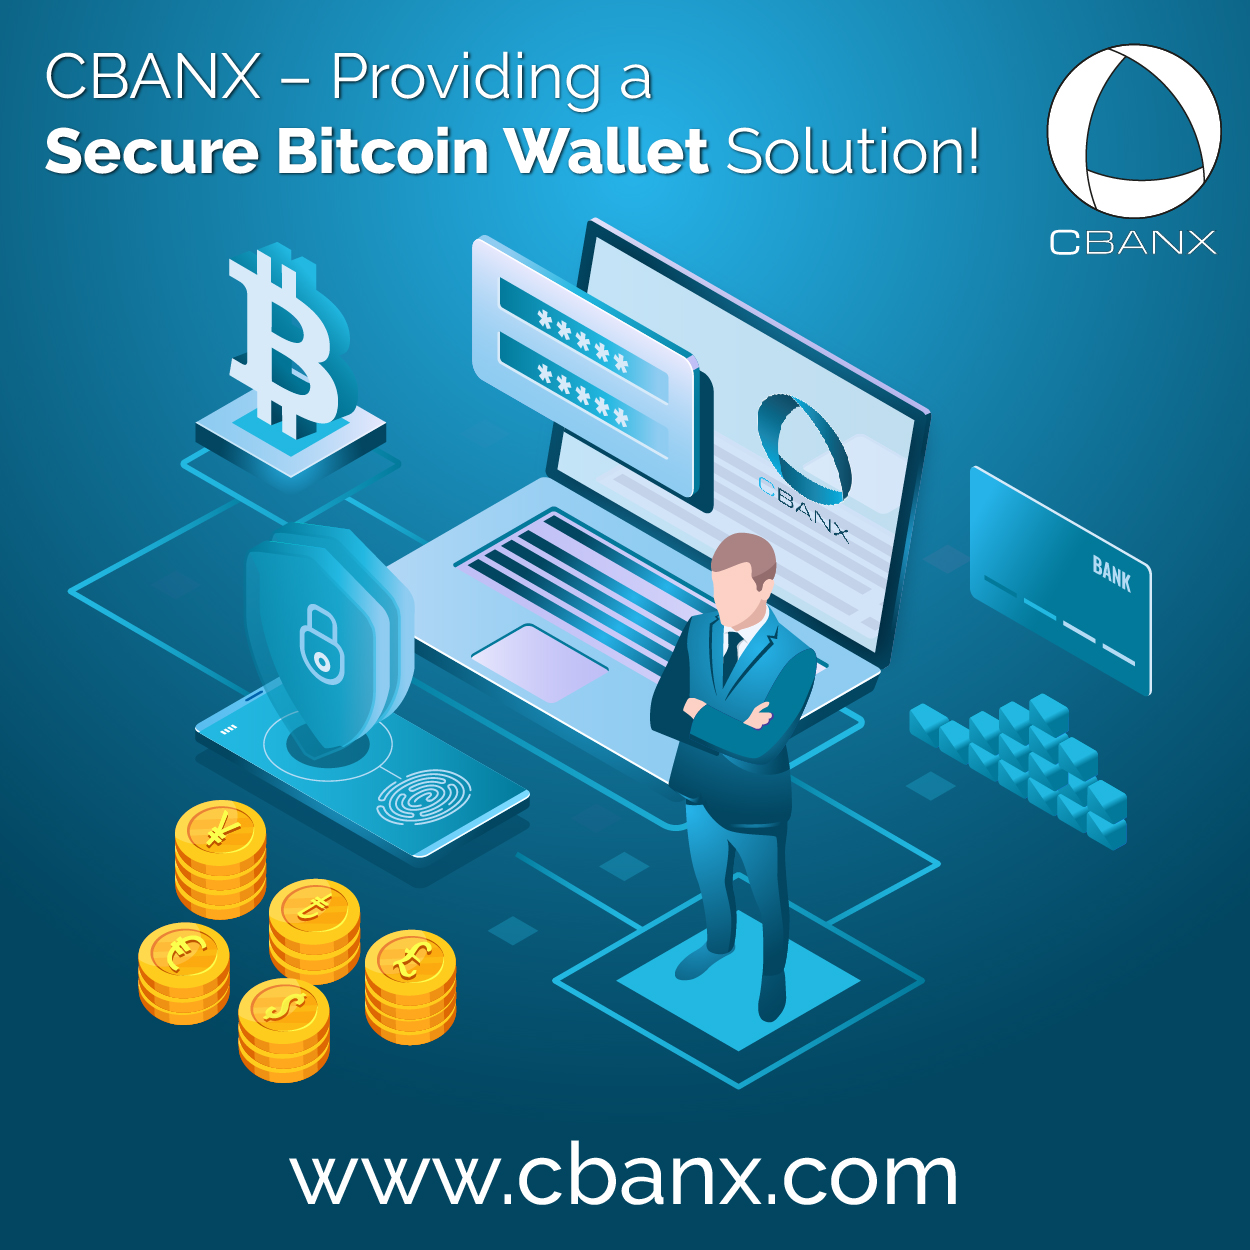 CBANX – Providing a Secure Bitcoin Wallet Solution!